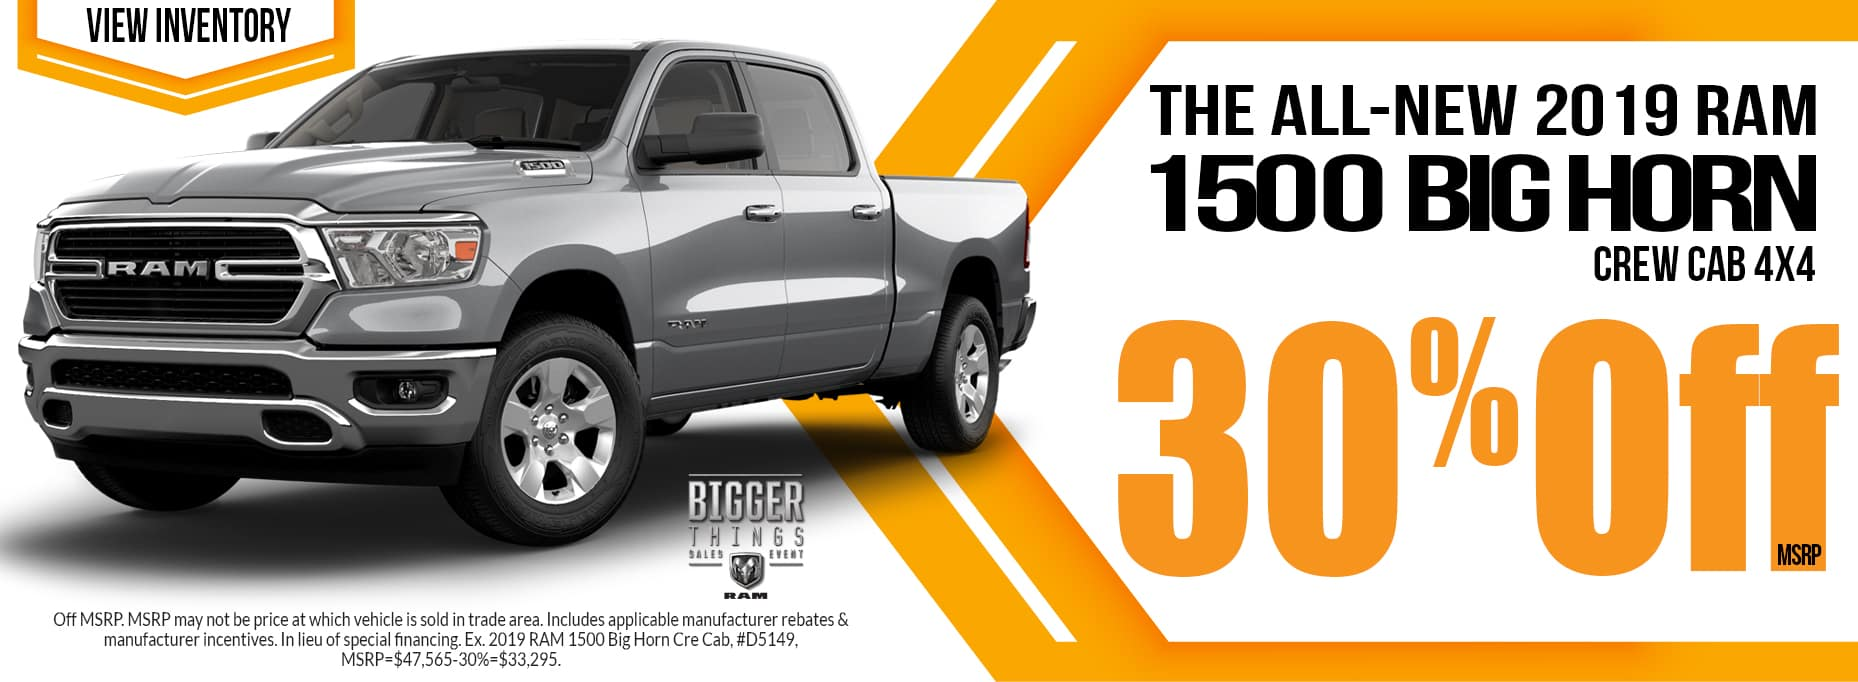 The All-New 2019 Ram 1500 Big Horn